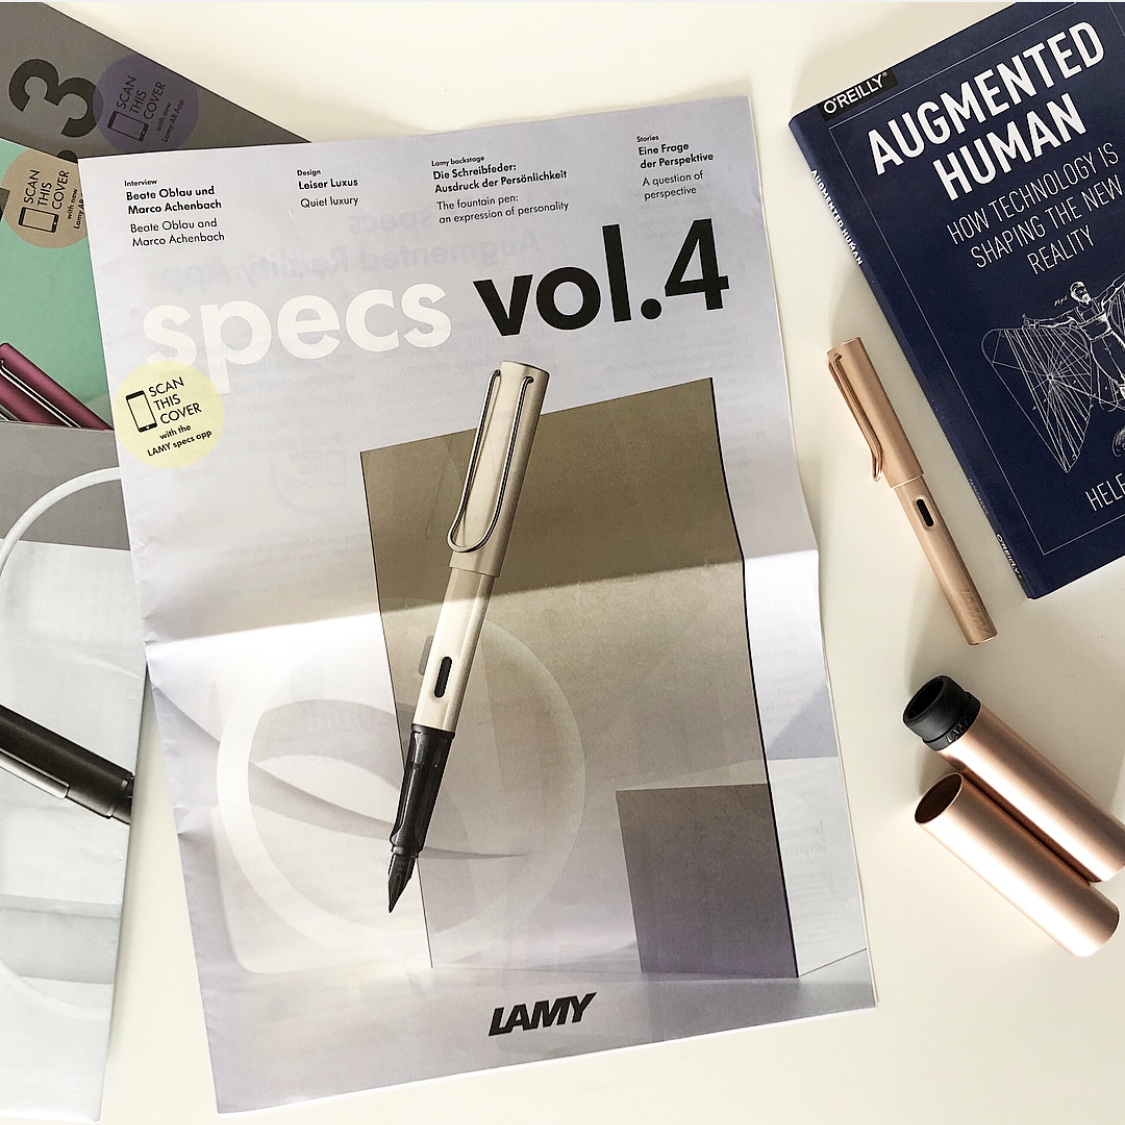 LAMY specs vol. 4 and LAMY Lx Rosegold Fountain pen. Photo: Helen Papagiannis